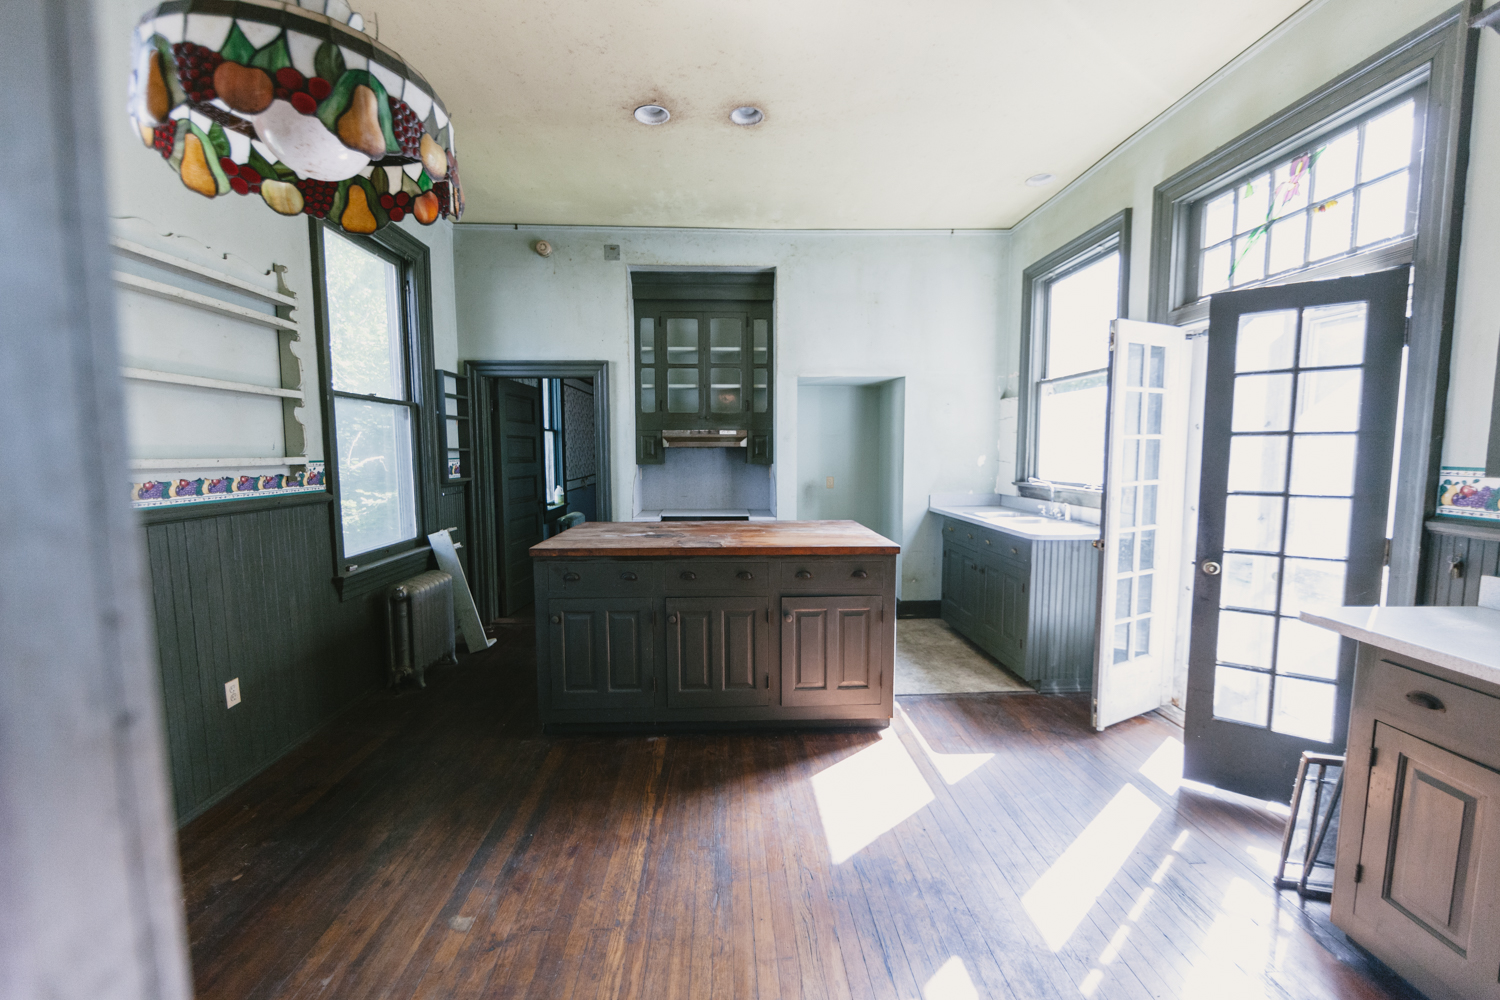 The kitchen features an historic island, once used as a lab table in Randolph Macon Womens college and opens up onto the back porch.